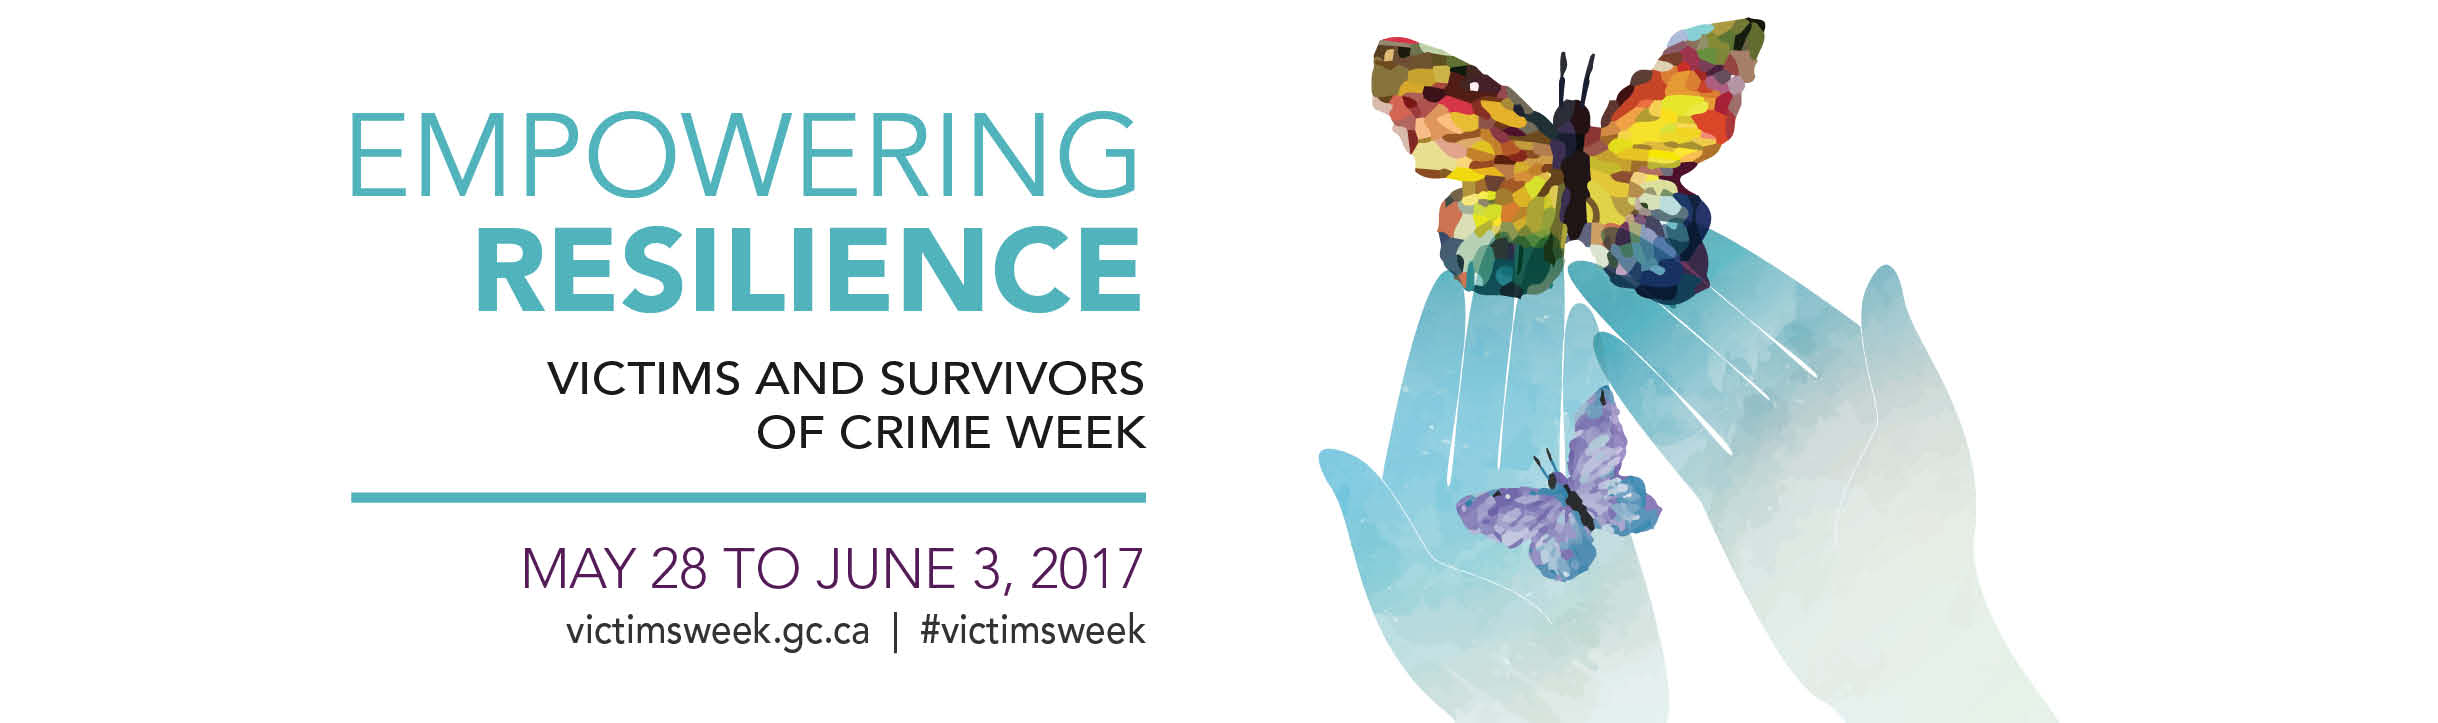 Victims and Survivors of Crime Week 2017